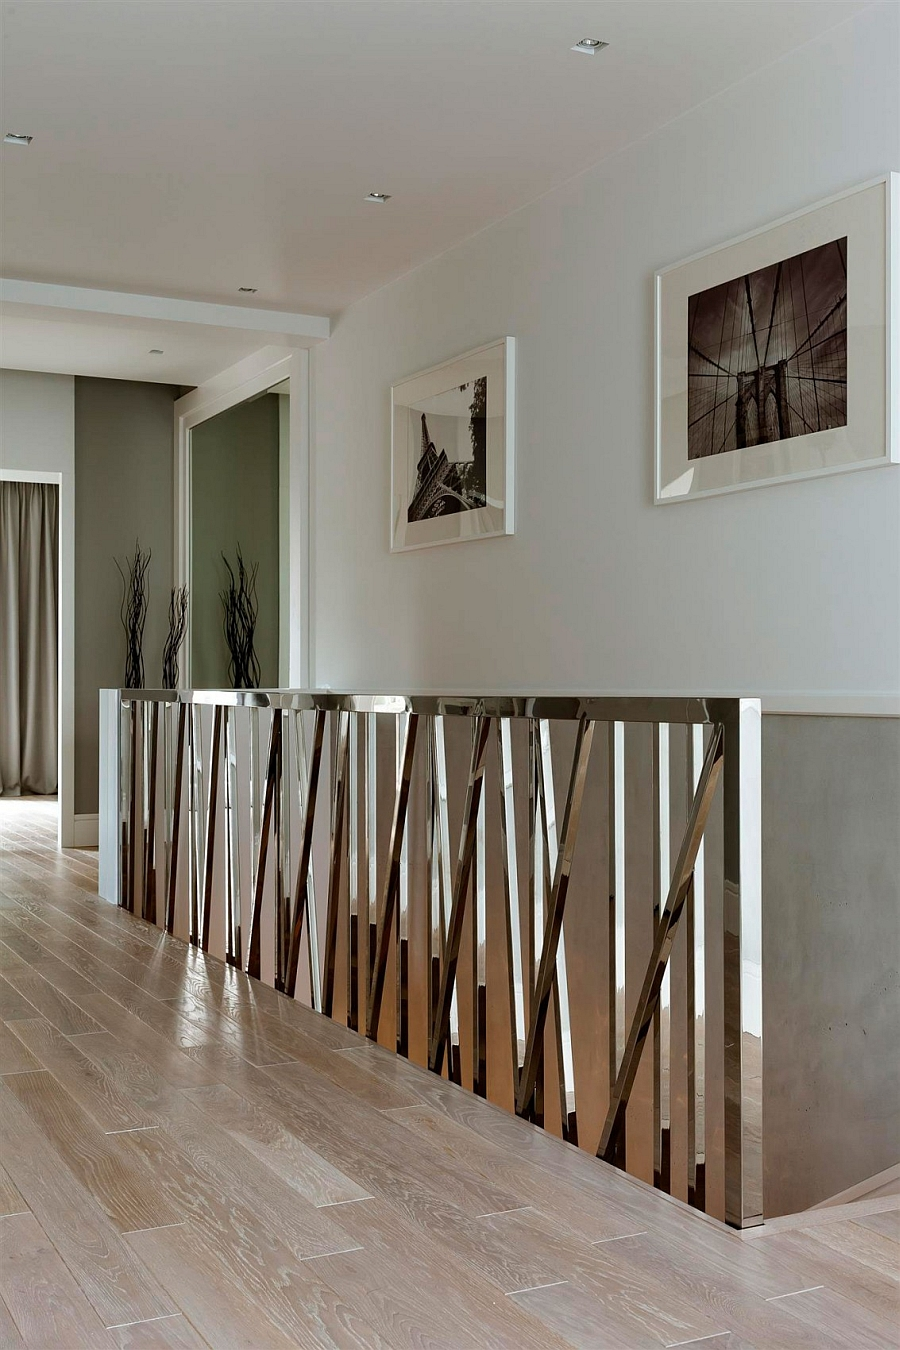 Let the staircase conect multiple levels with architectural synergy